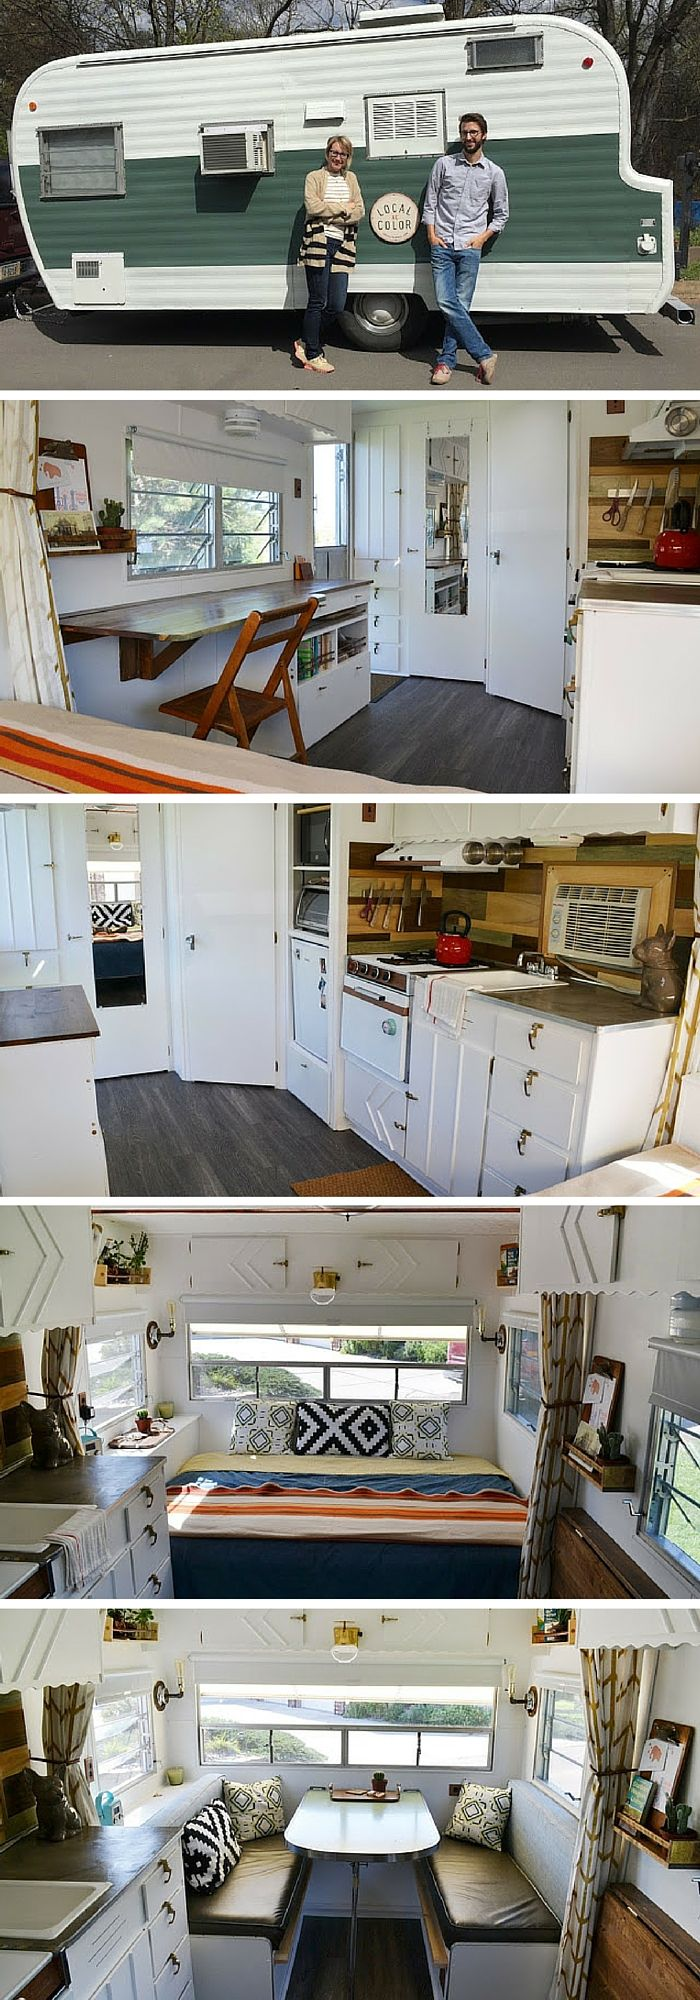 Diy rv interiors - 90 Interior Design Ideas For Camper Van